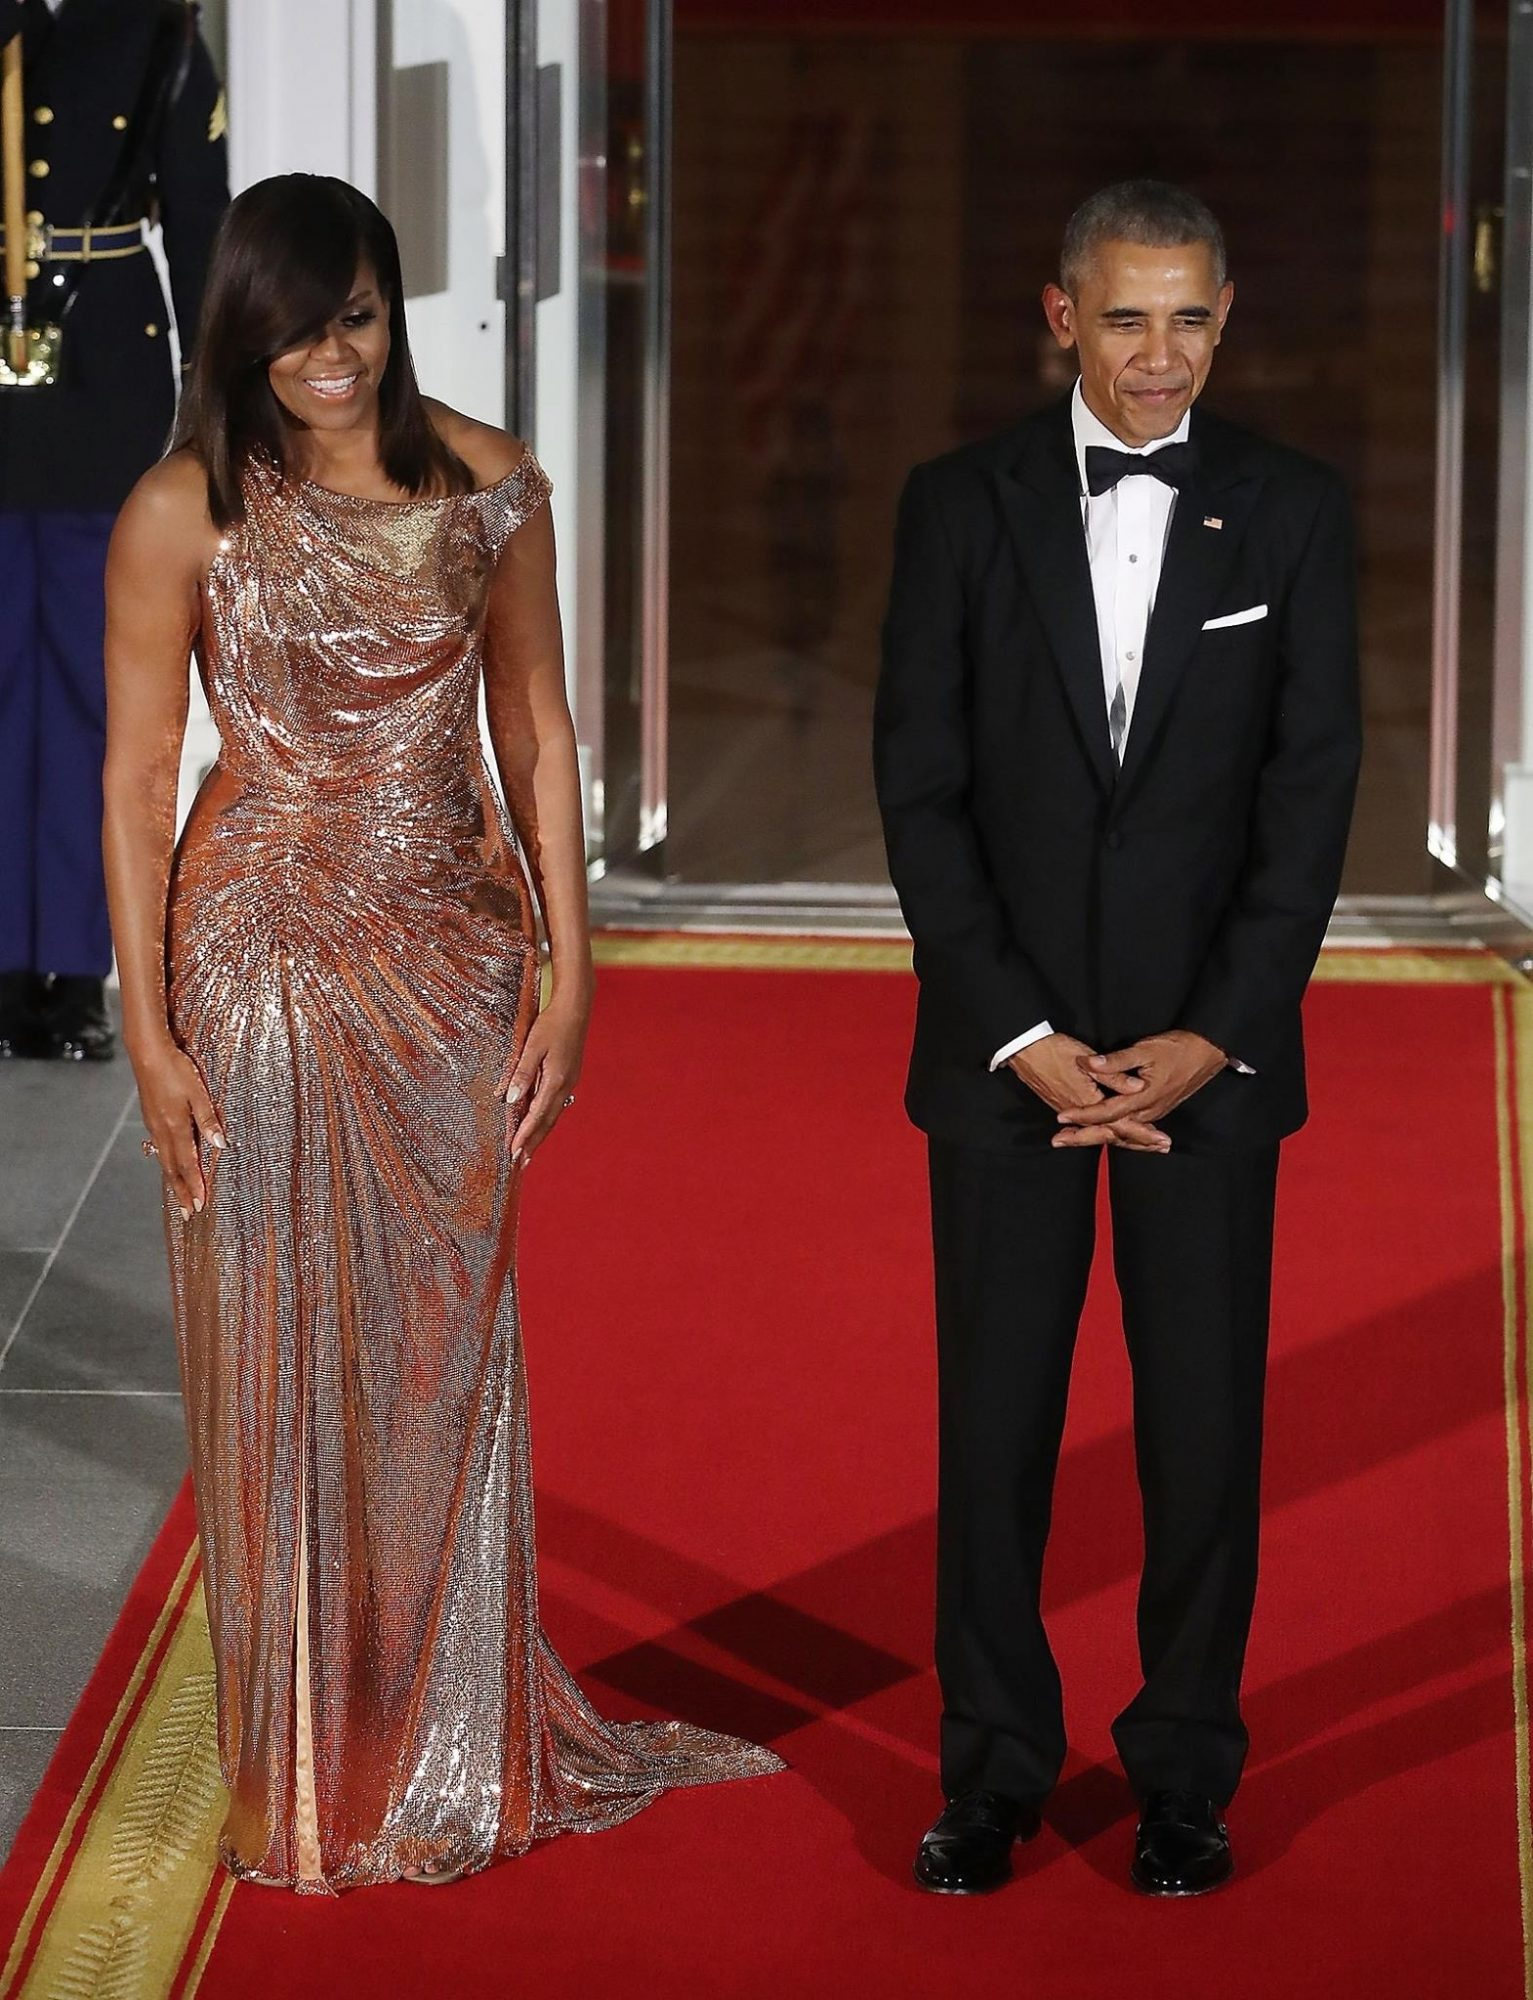 MICHELLE OBAMA WEARS VERSACE IN FINAL STATE DINNER